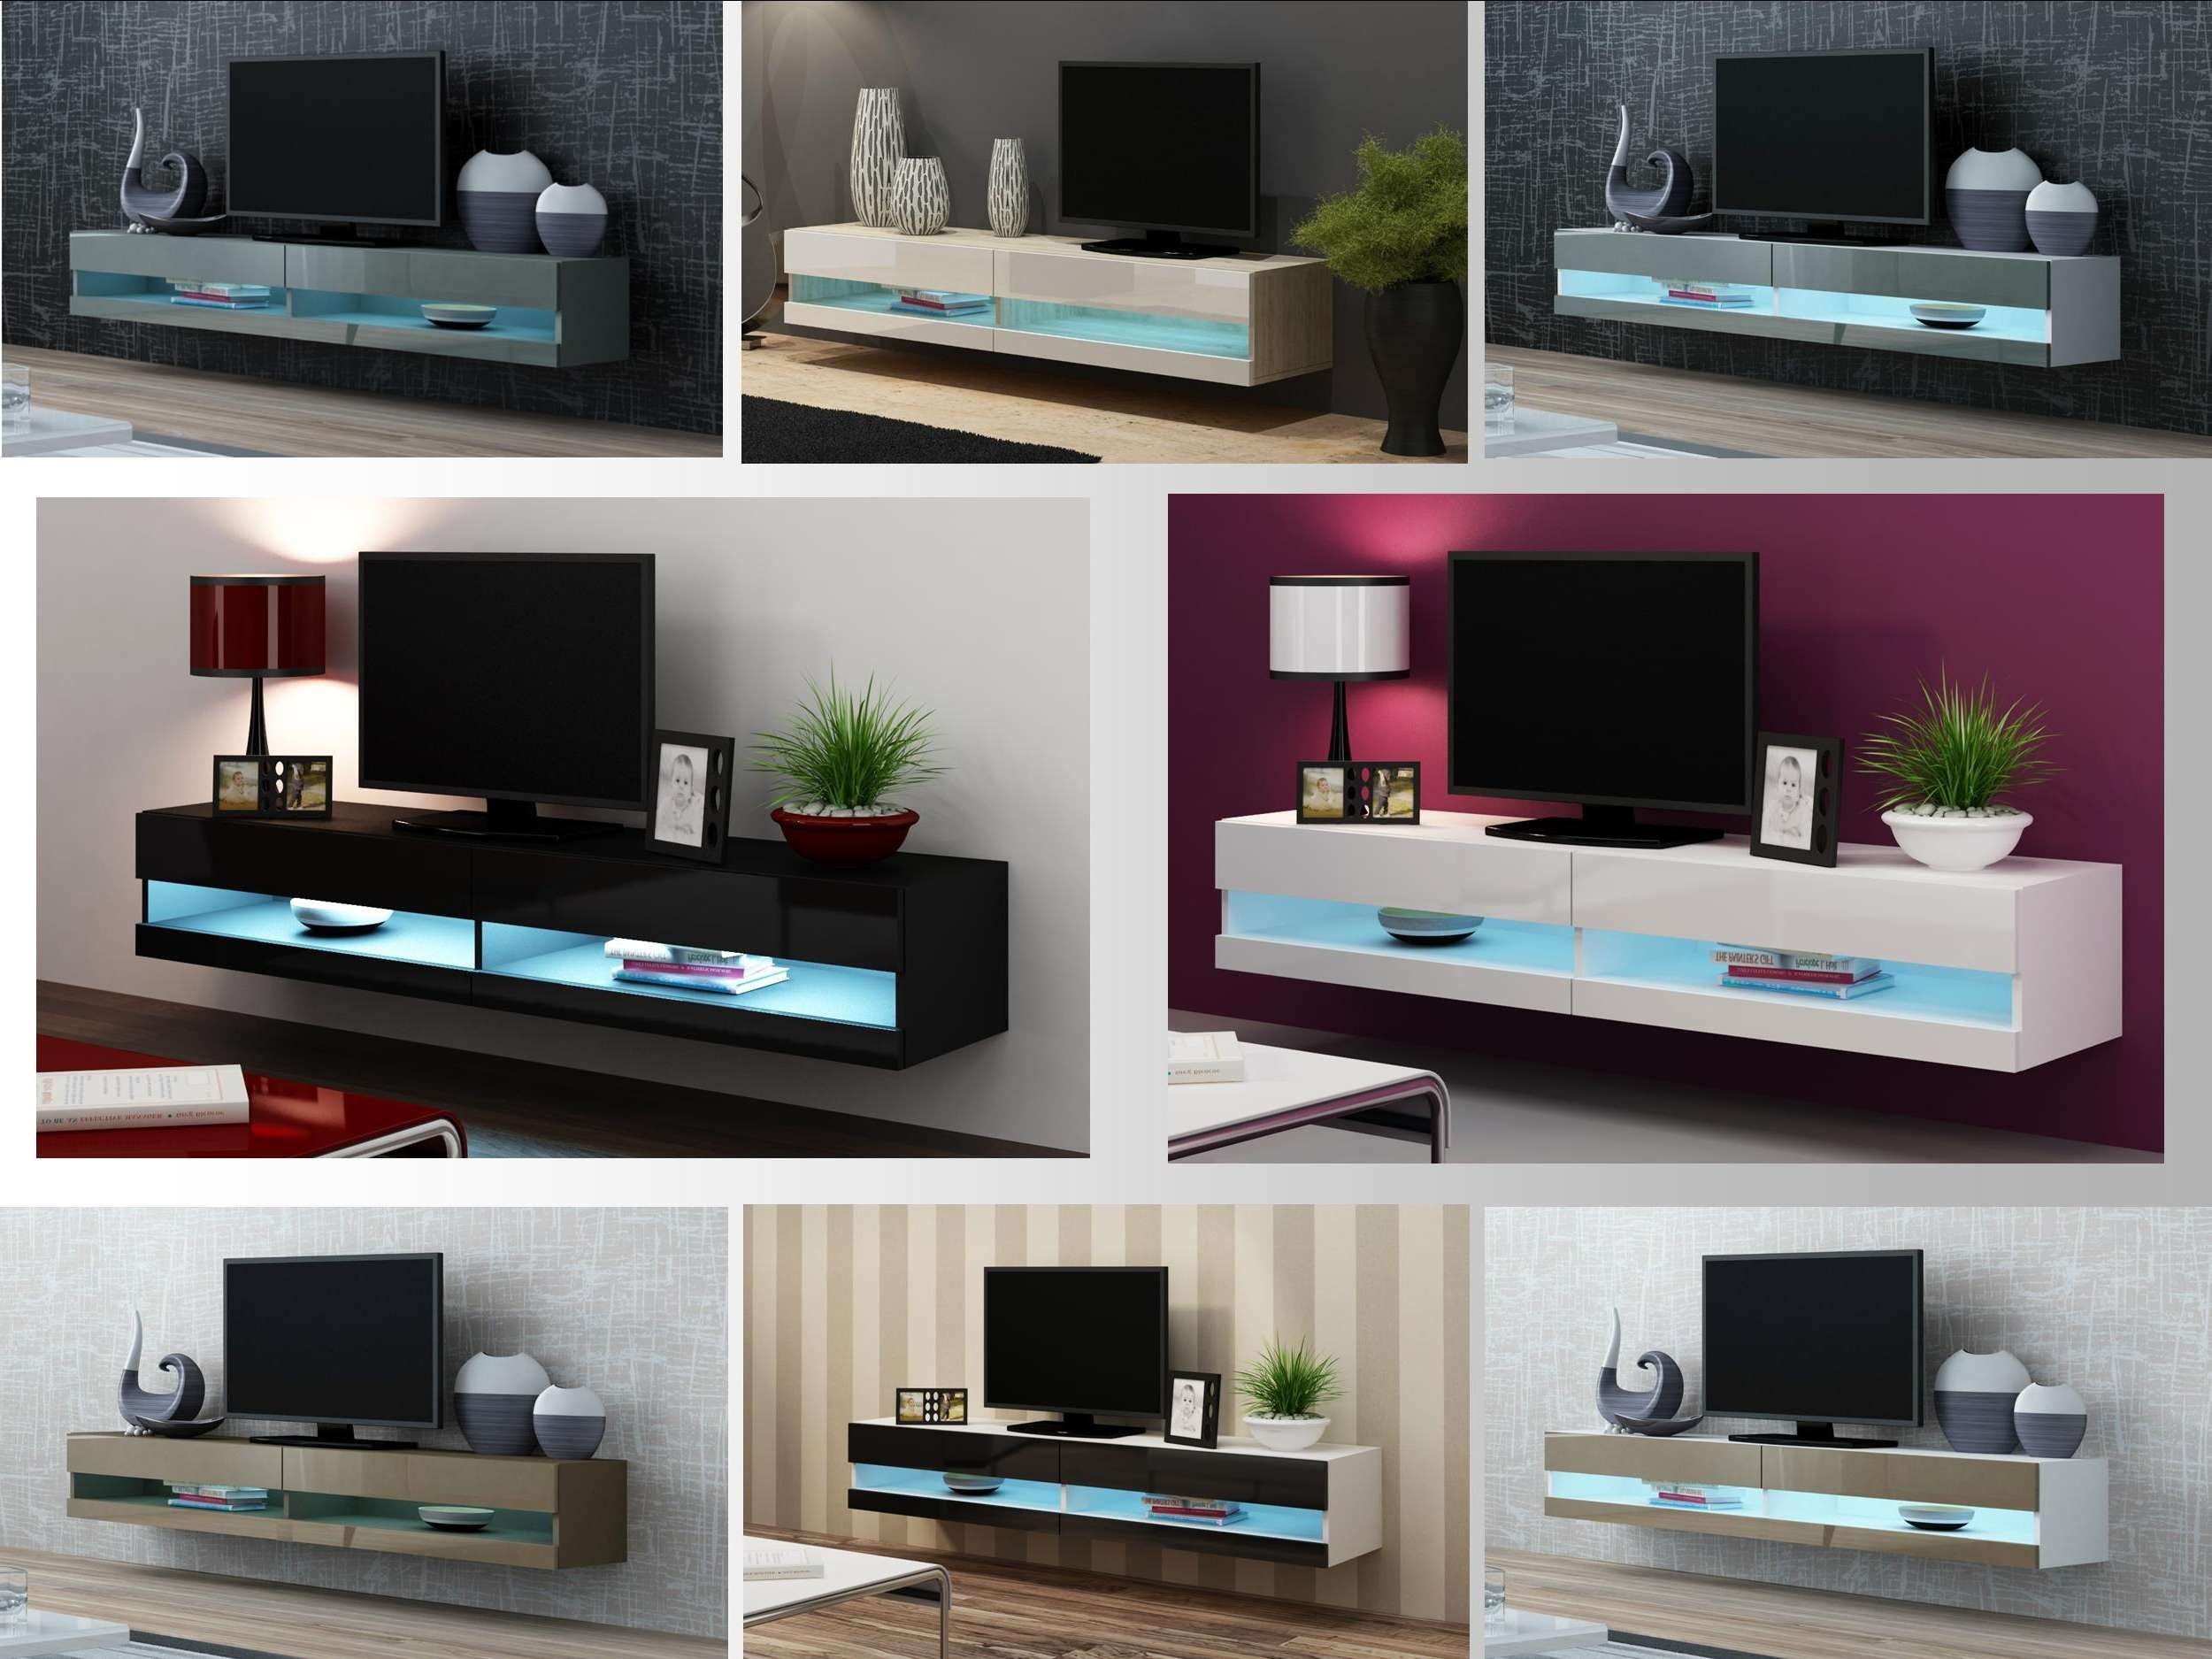 High Gloss Tv Stand Cabinet With Led Lights | Entertainment With White High Gloss Tv Stands Unit Cabinet (View 5 of 15)